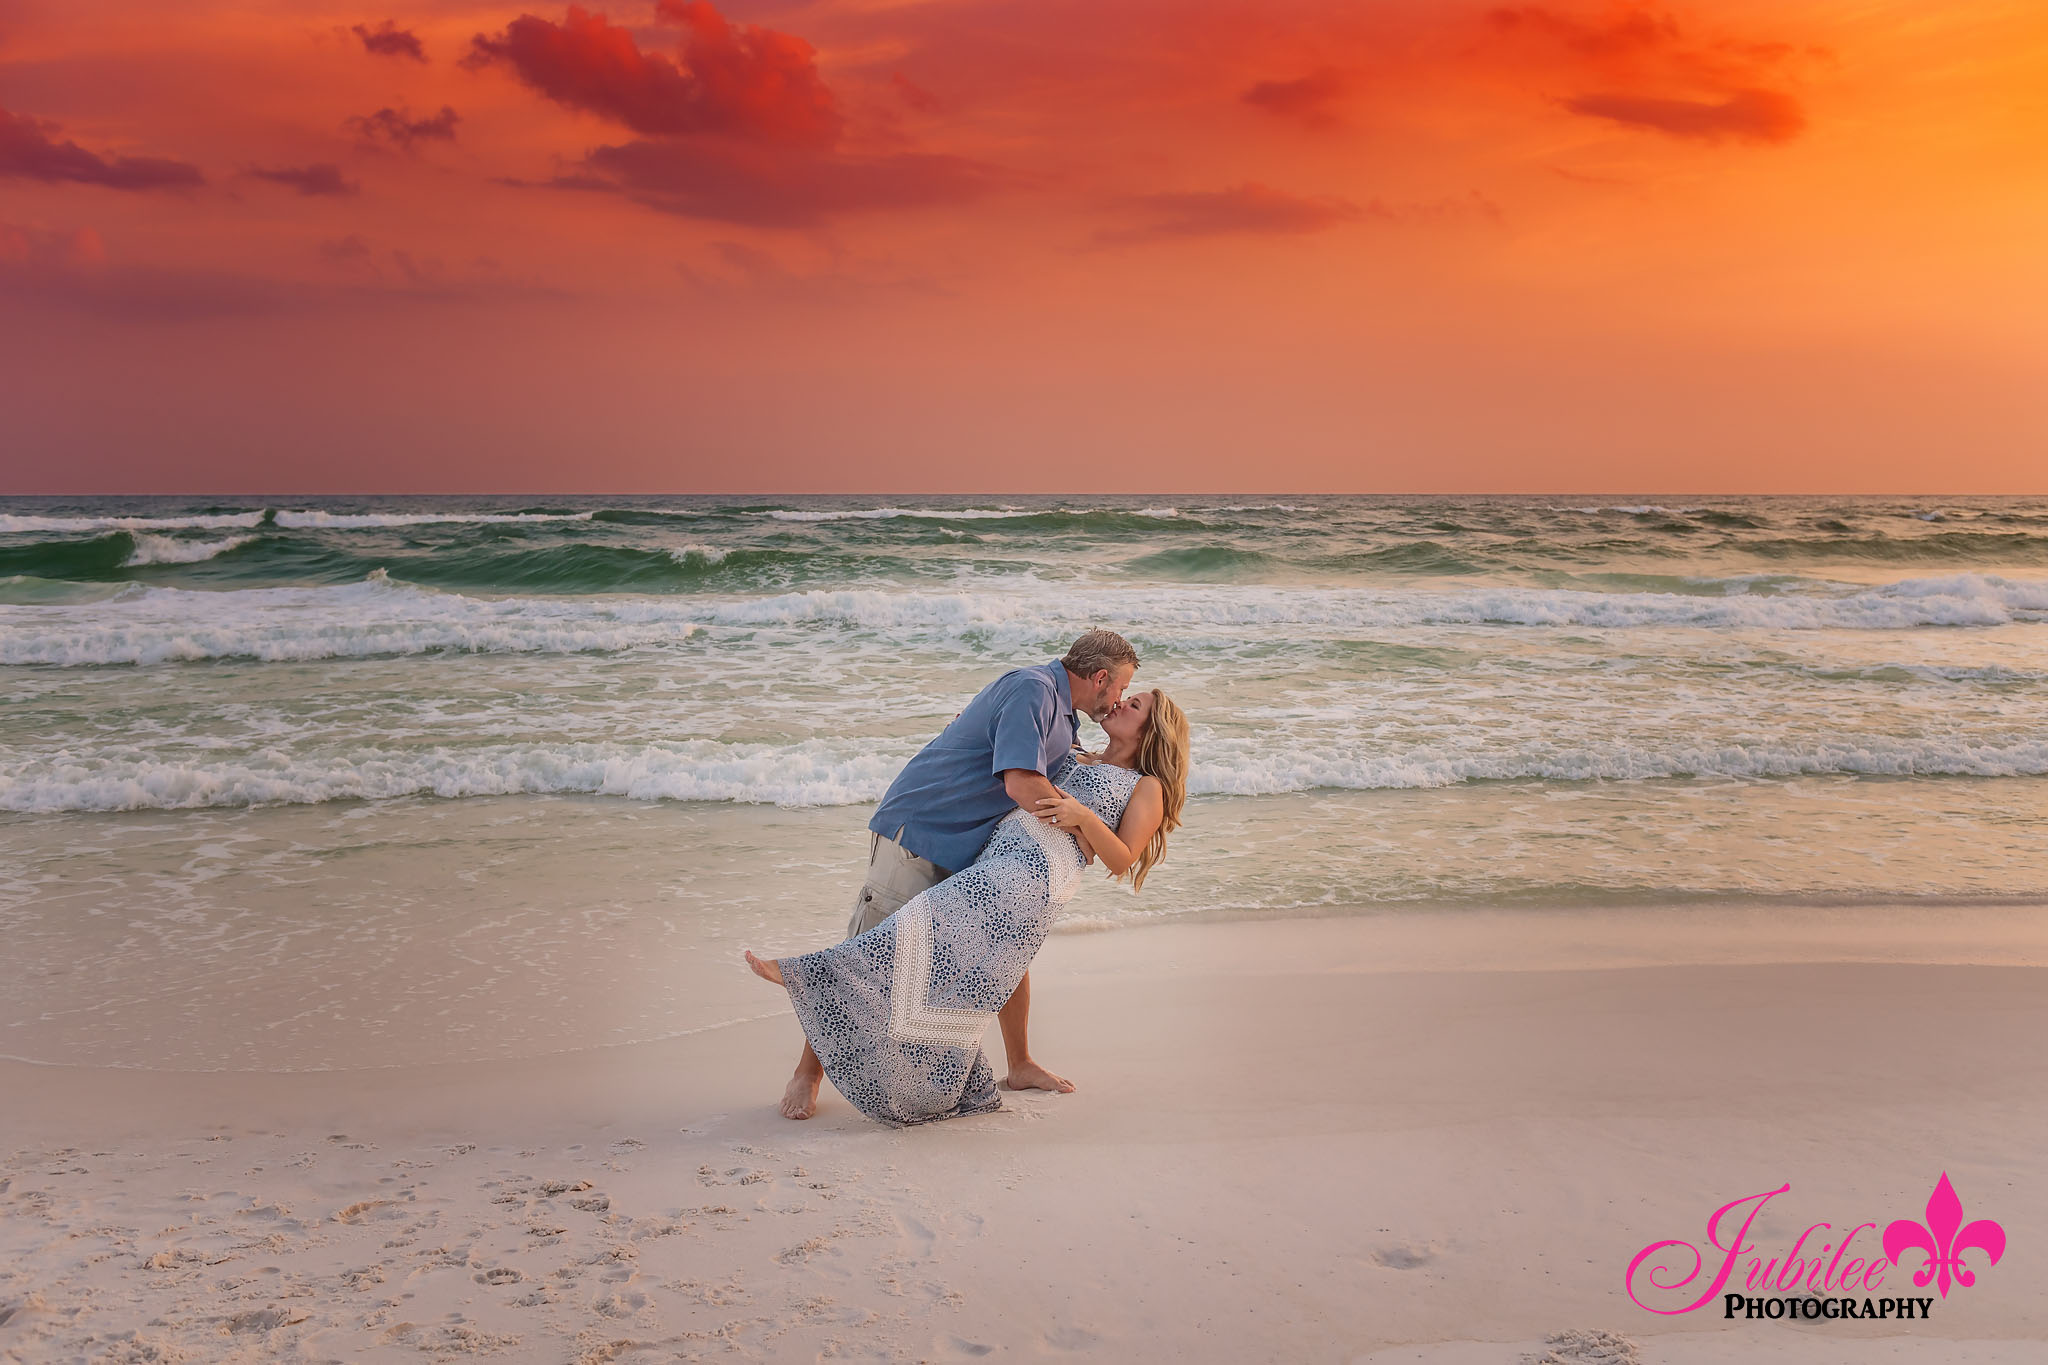 destin_beach_photographer_6204